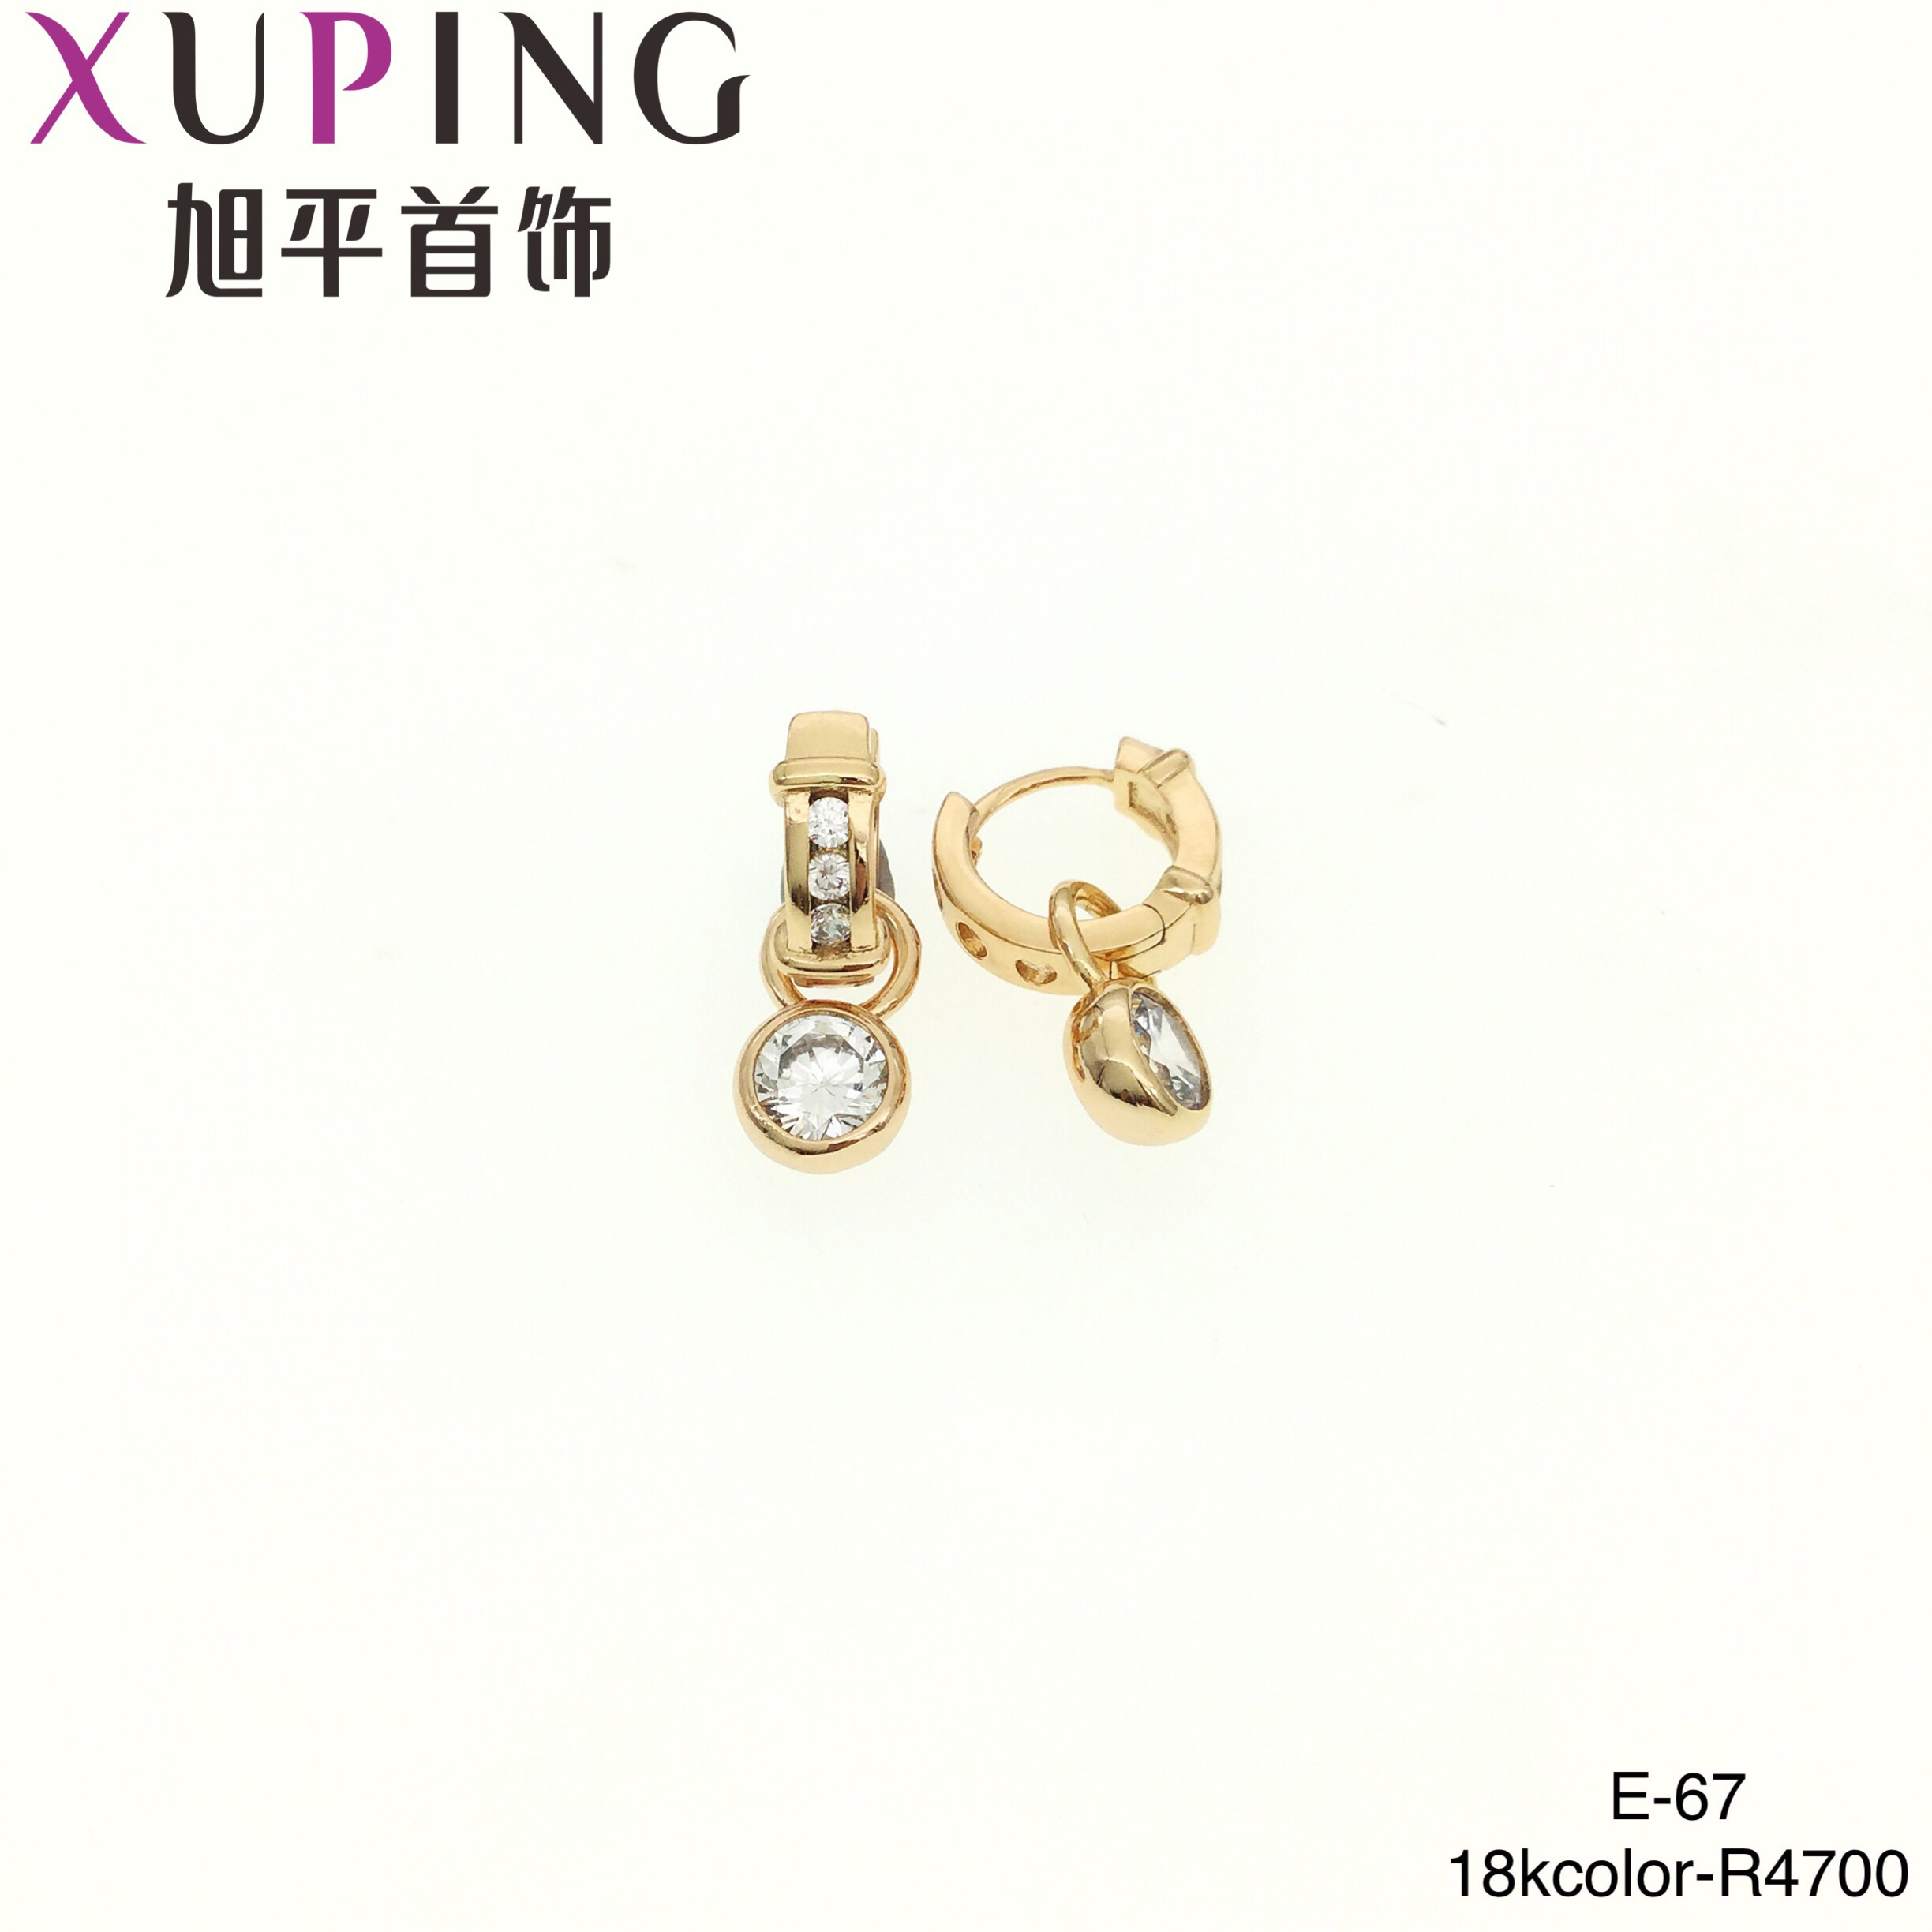 A01 xuping New designer hand shaped earrings women jewelry gold plated drop earrings